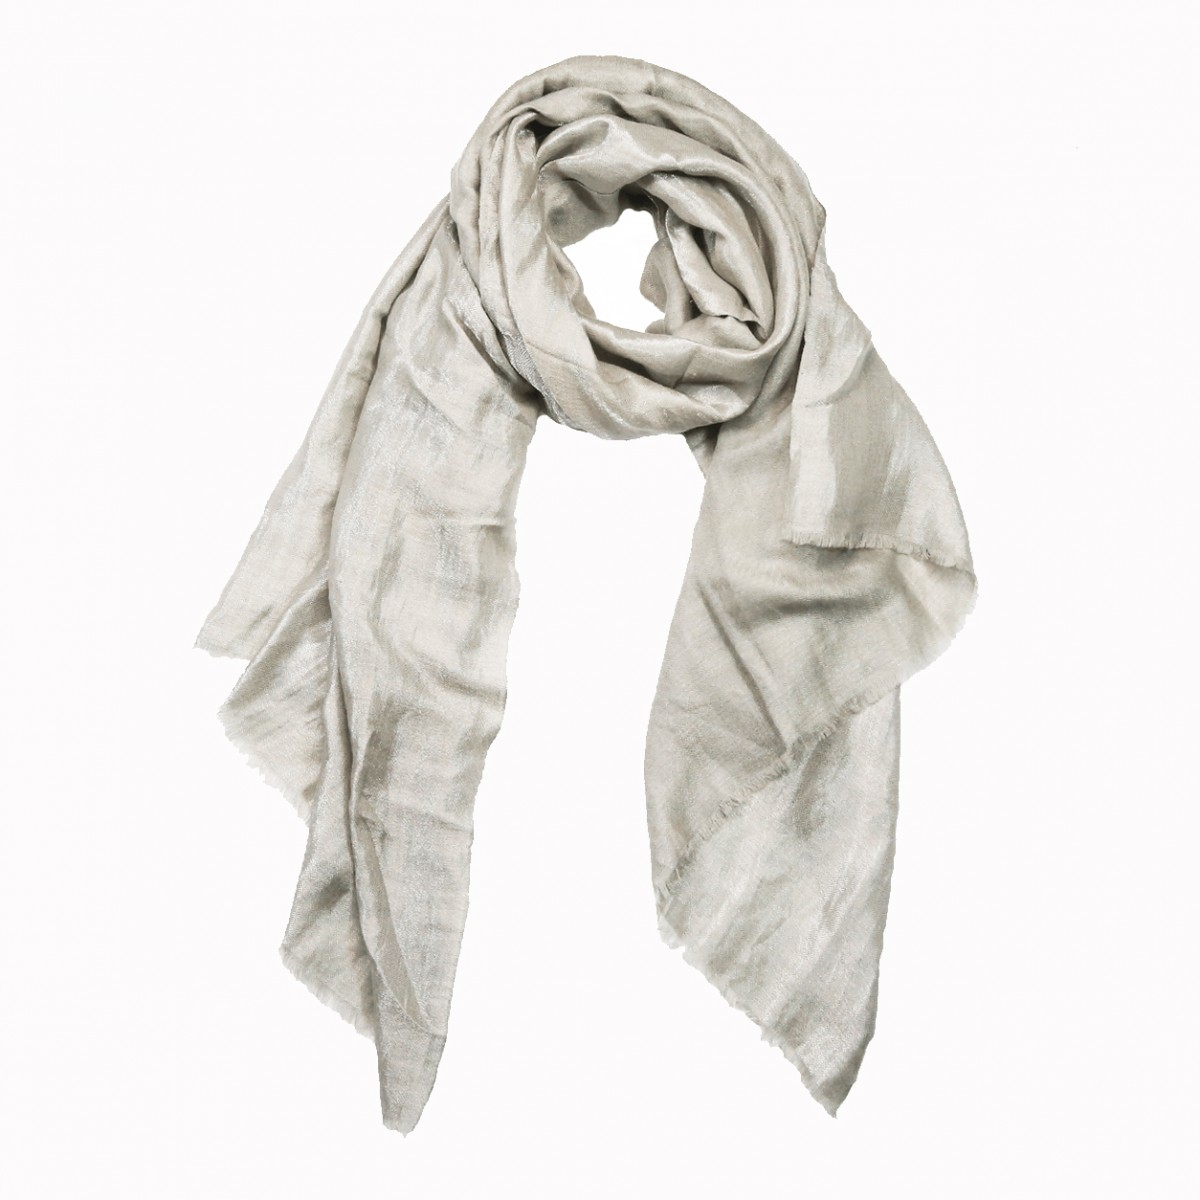 Reversible natural silver metallic pashmina stole